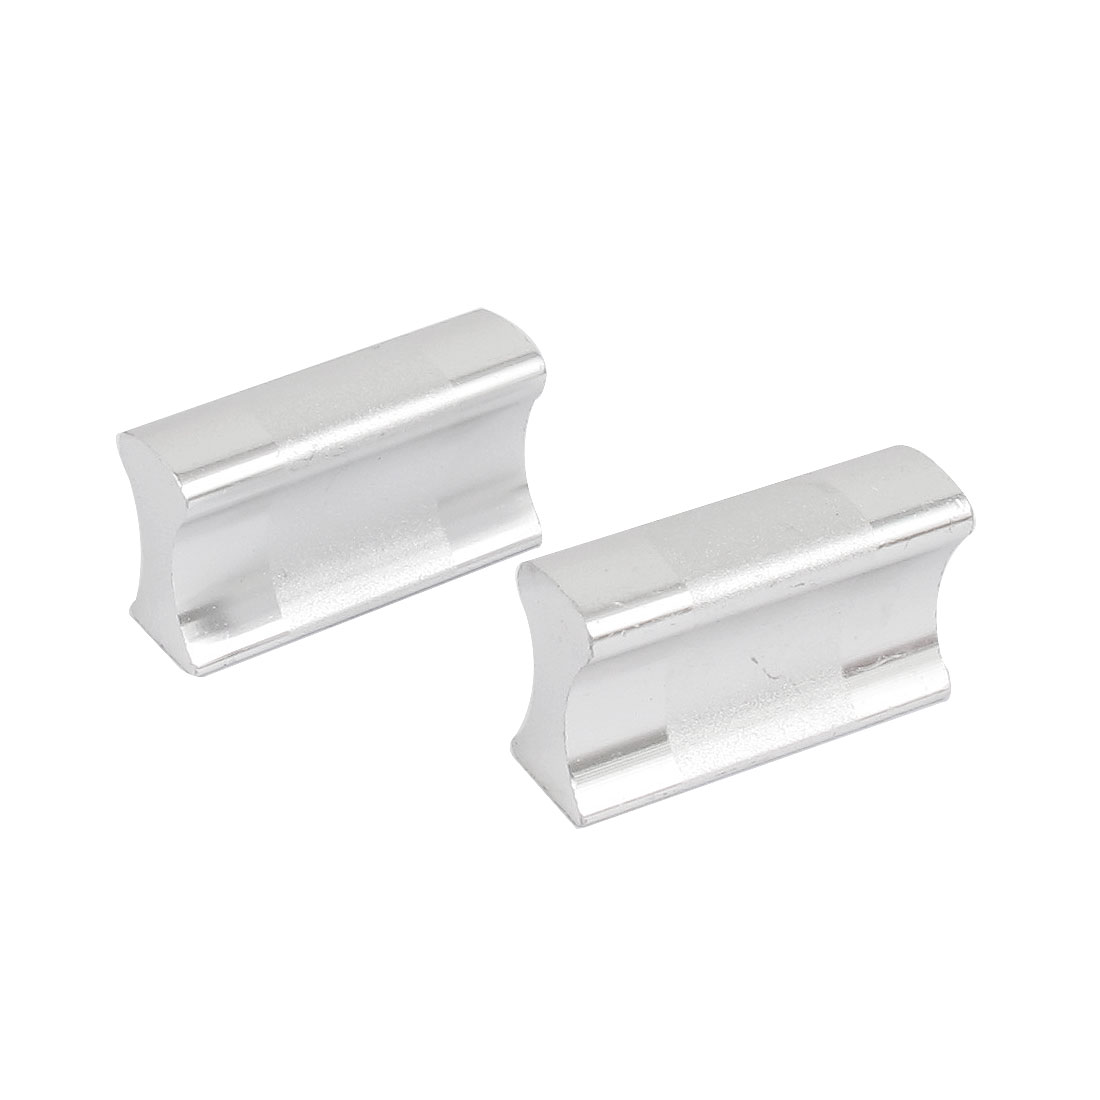 2pcs Kitchen Drawer Cabinet Cupboard Door Bar Pull Handle Knob 40mm Long